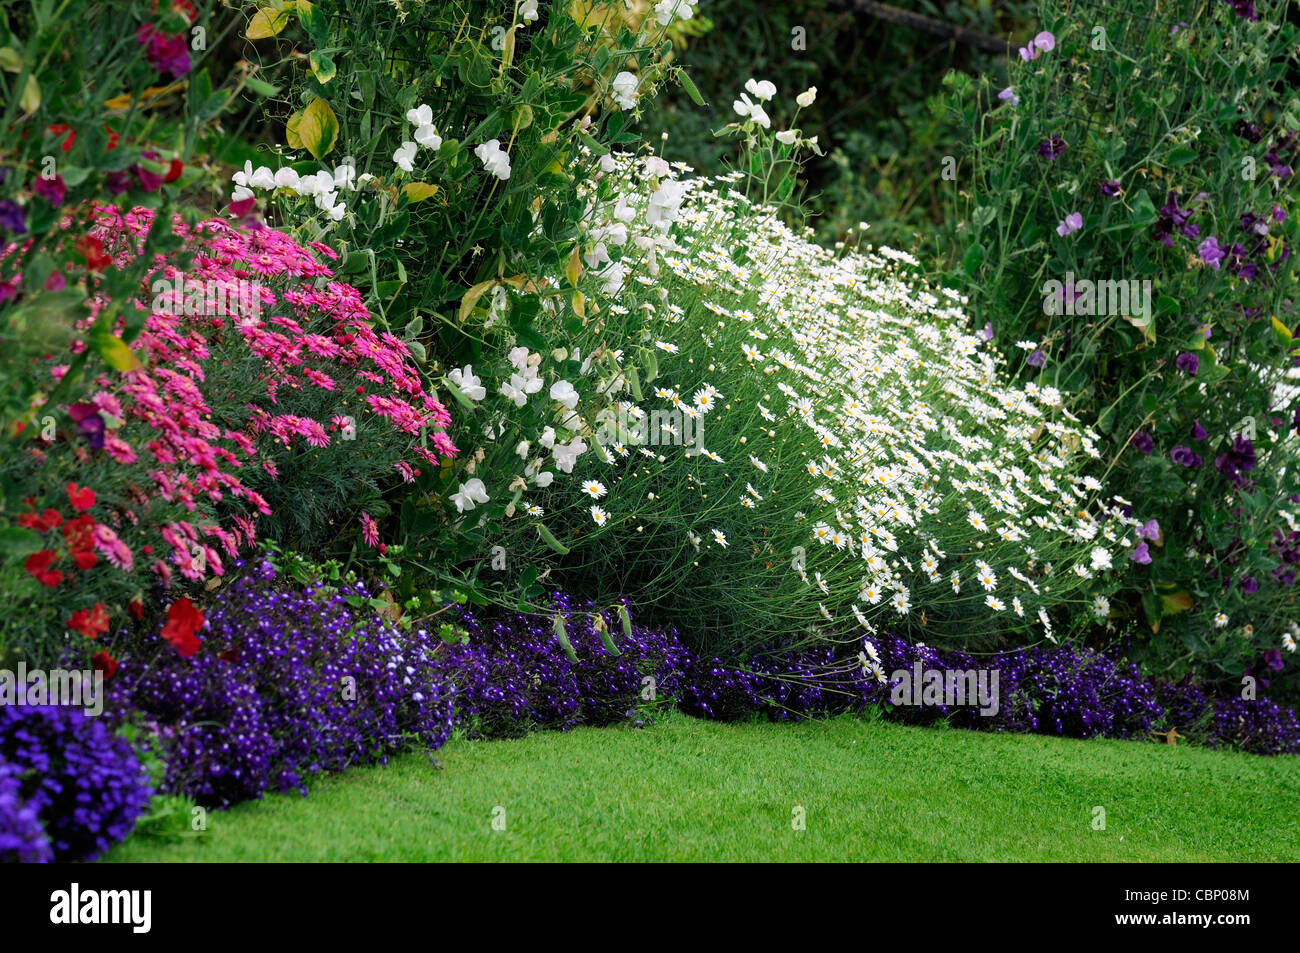 Summer flowering flowers herbaceous border bed flower plant planting stock photo royalty free - Perennial flowers for borders visual gardens ...